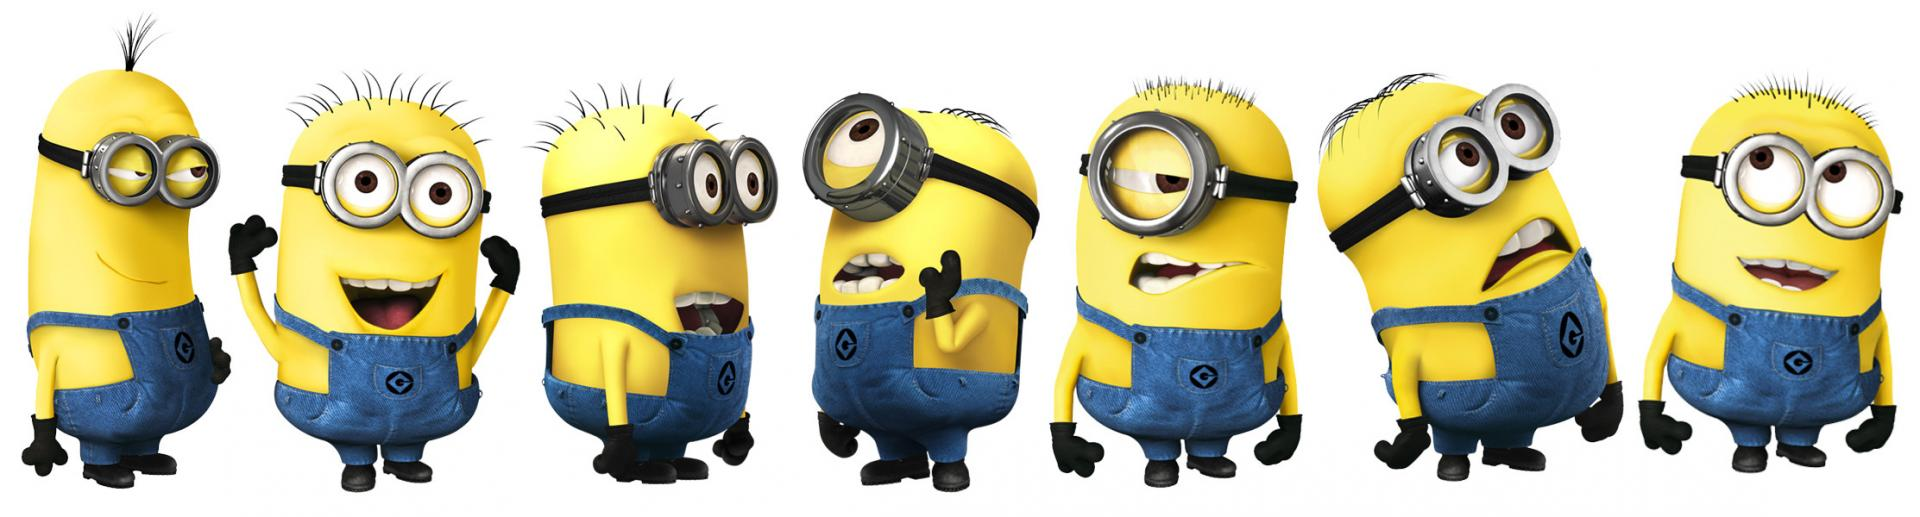 Minions 2015  Financial Information